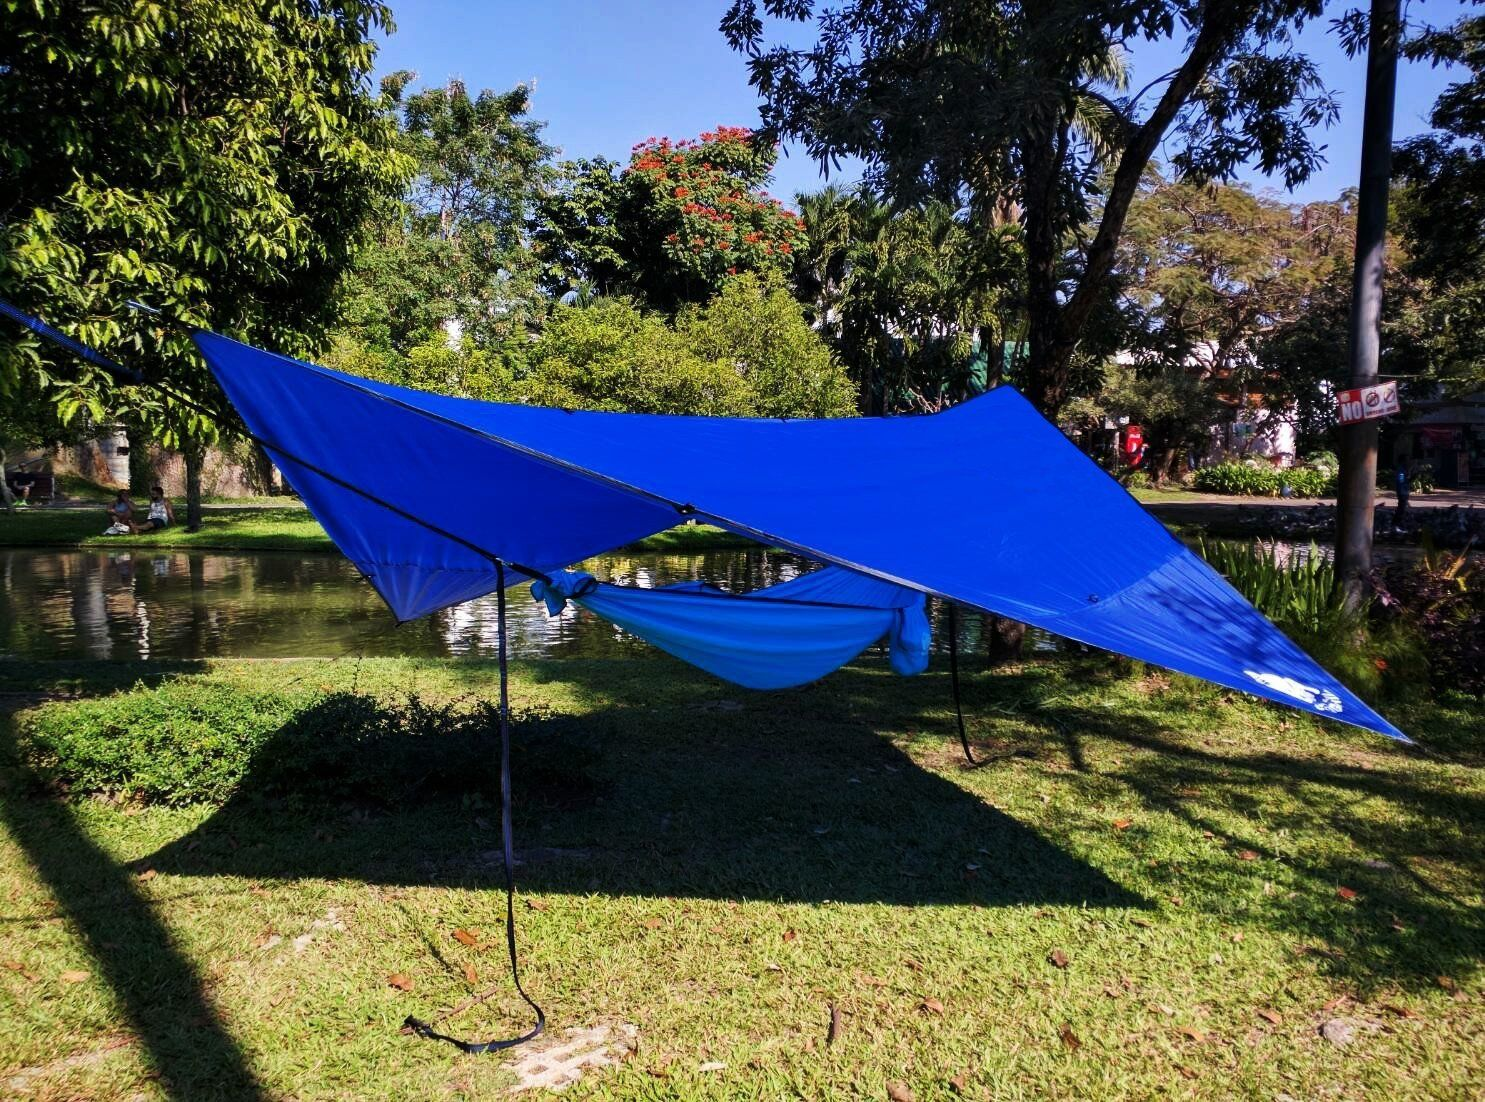 buy crehouse hammock tent with mosquito   and rainfly rain cover waterproof at online store amazon     chill gorilla 12 u0027 pro rain fly blue waterproof tent      rh   pinterest